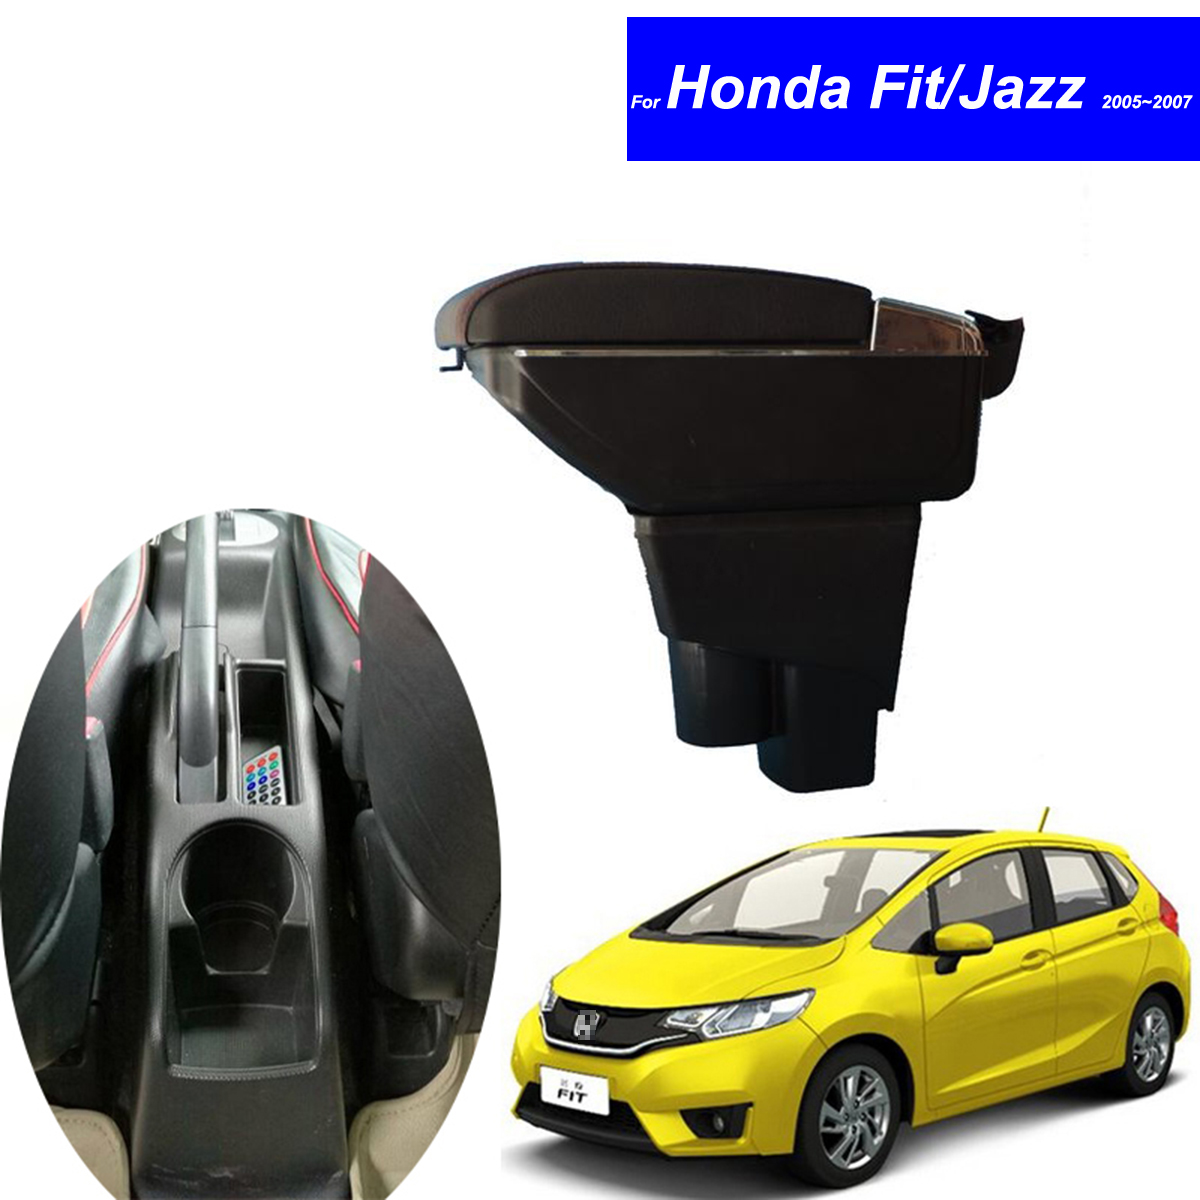 Leather Car Center Console Armrest Box for Honda Fit Jazz Hatchback 2005 2006 2007 Armrests Storage Box with USB Free Shipping universal leather car armrest central store content storage box with cup holder center console armrests free shipping